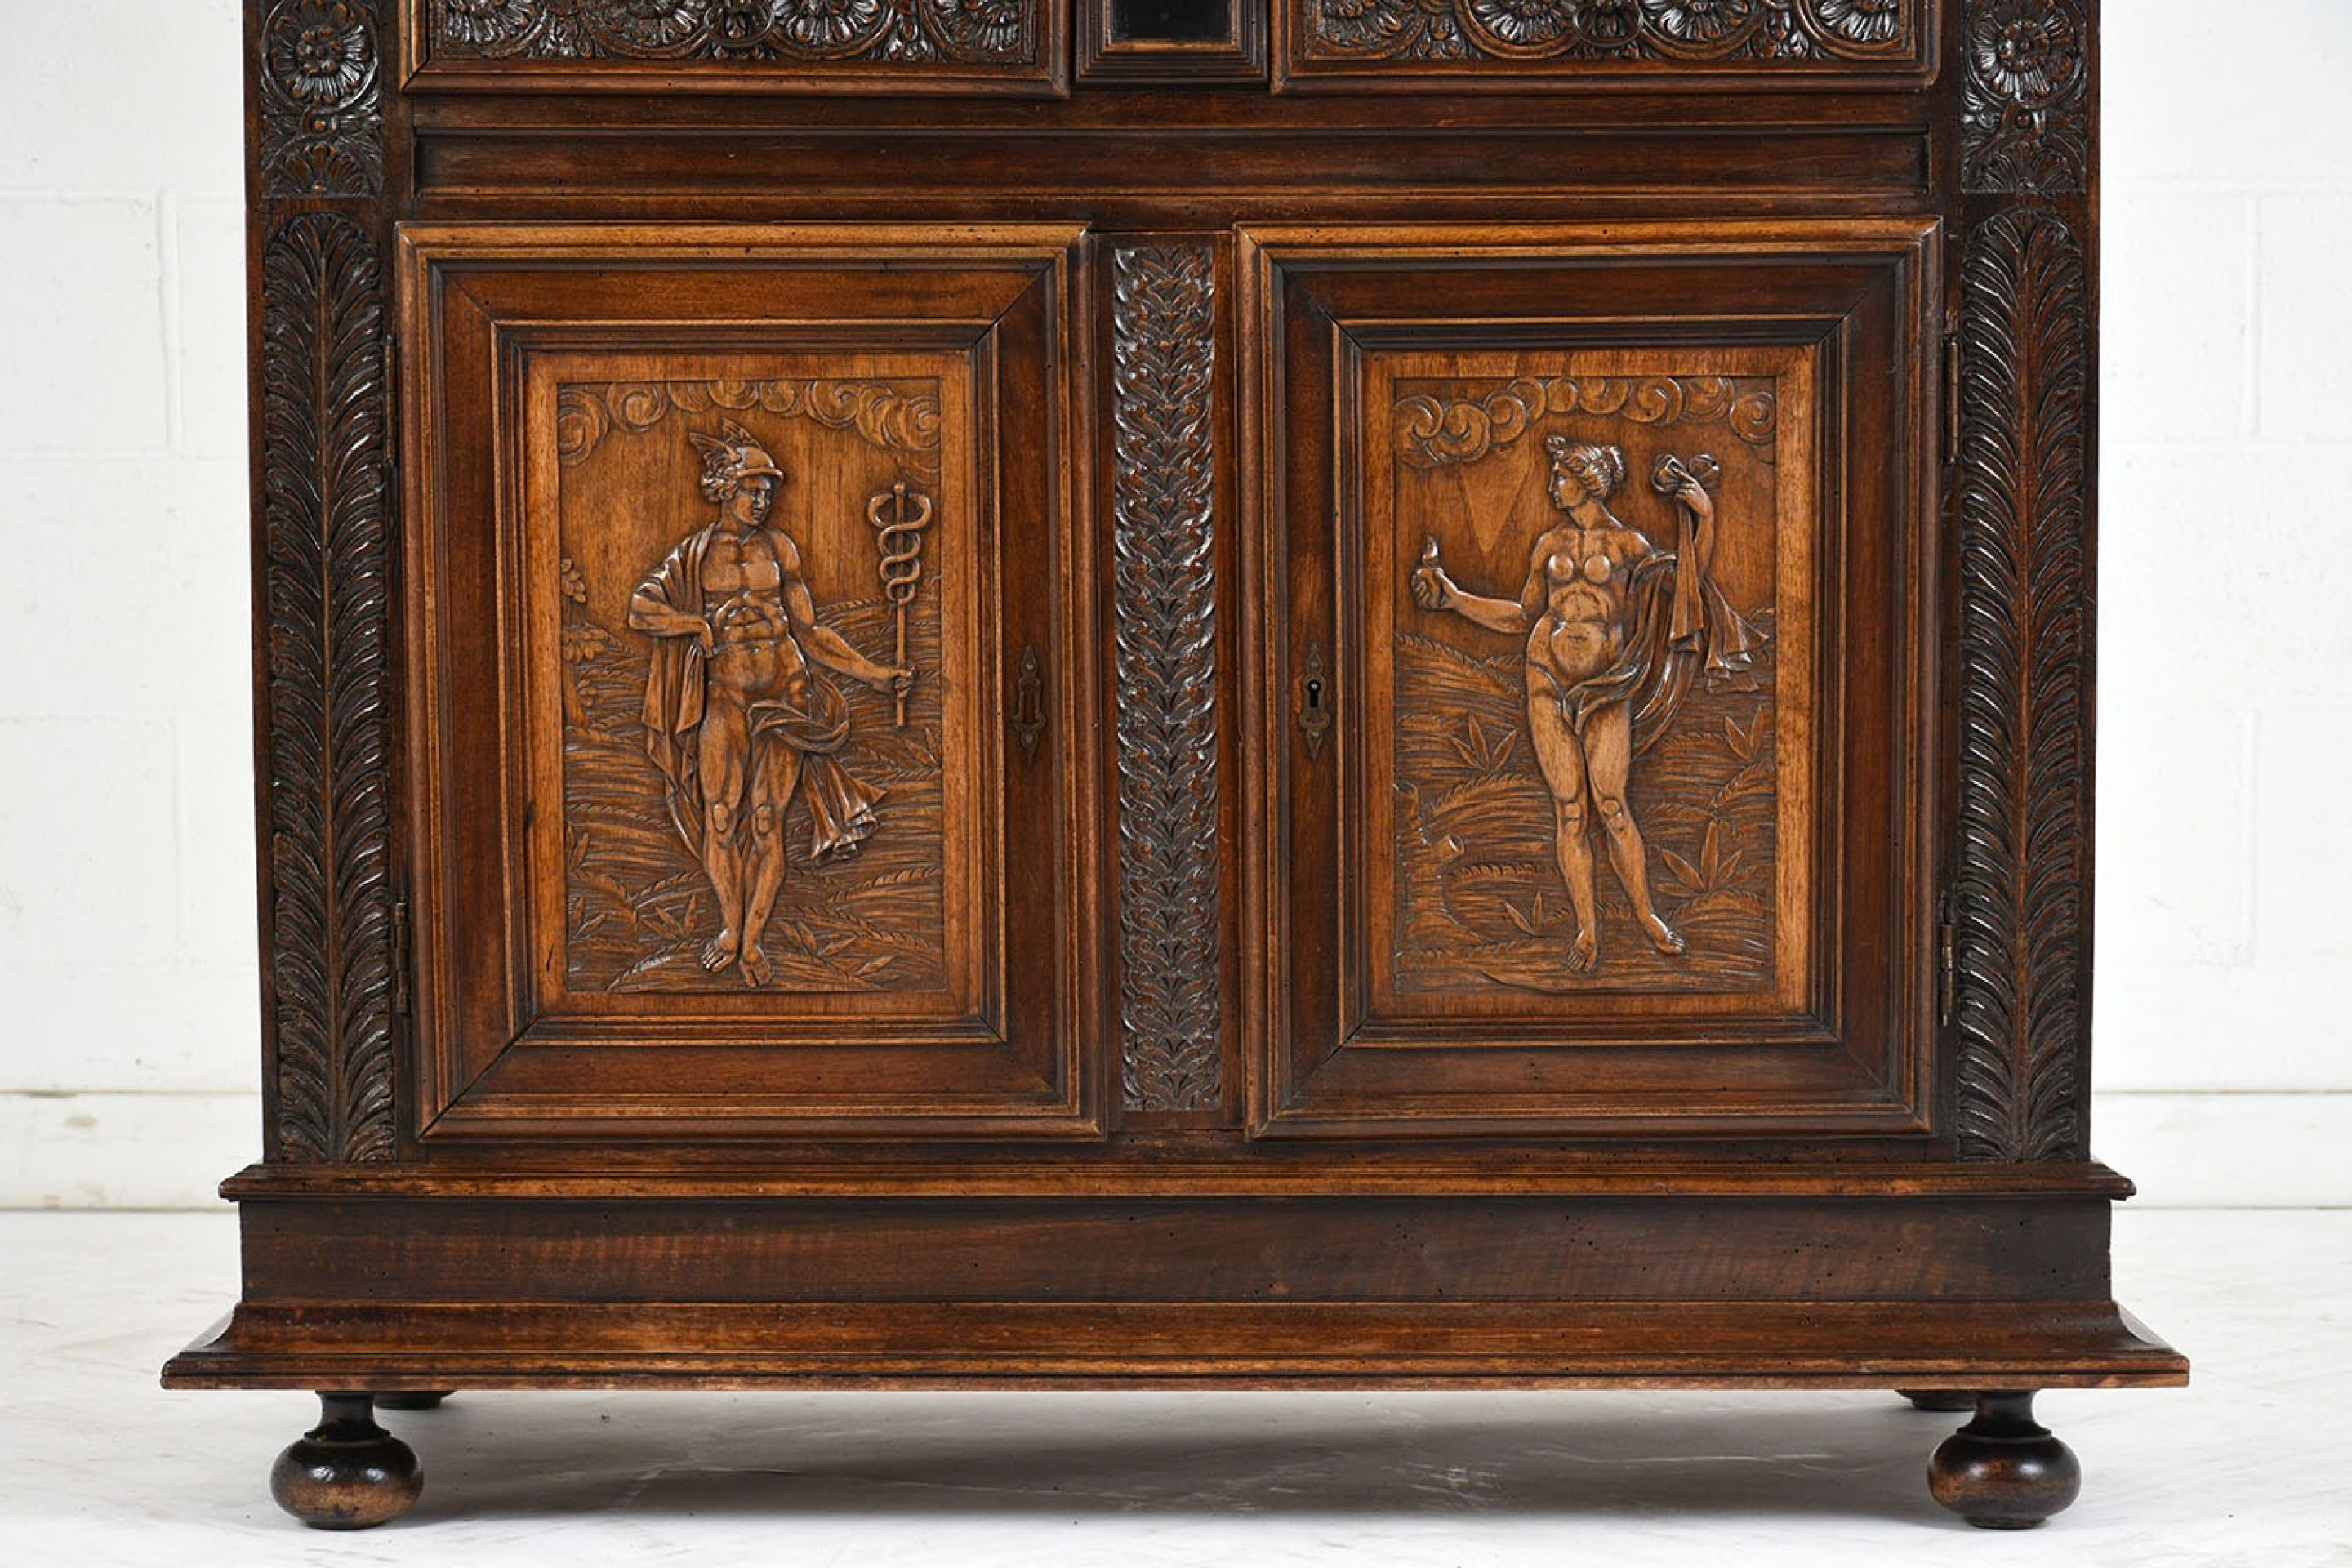 Early 19th Century French Renaissance-style Sideboard